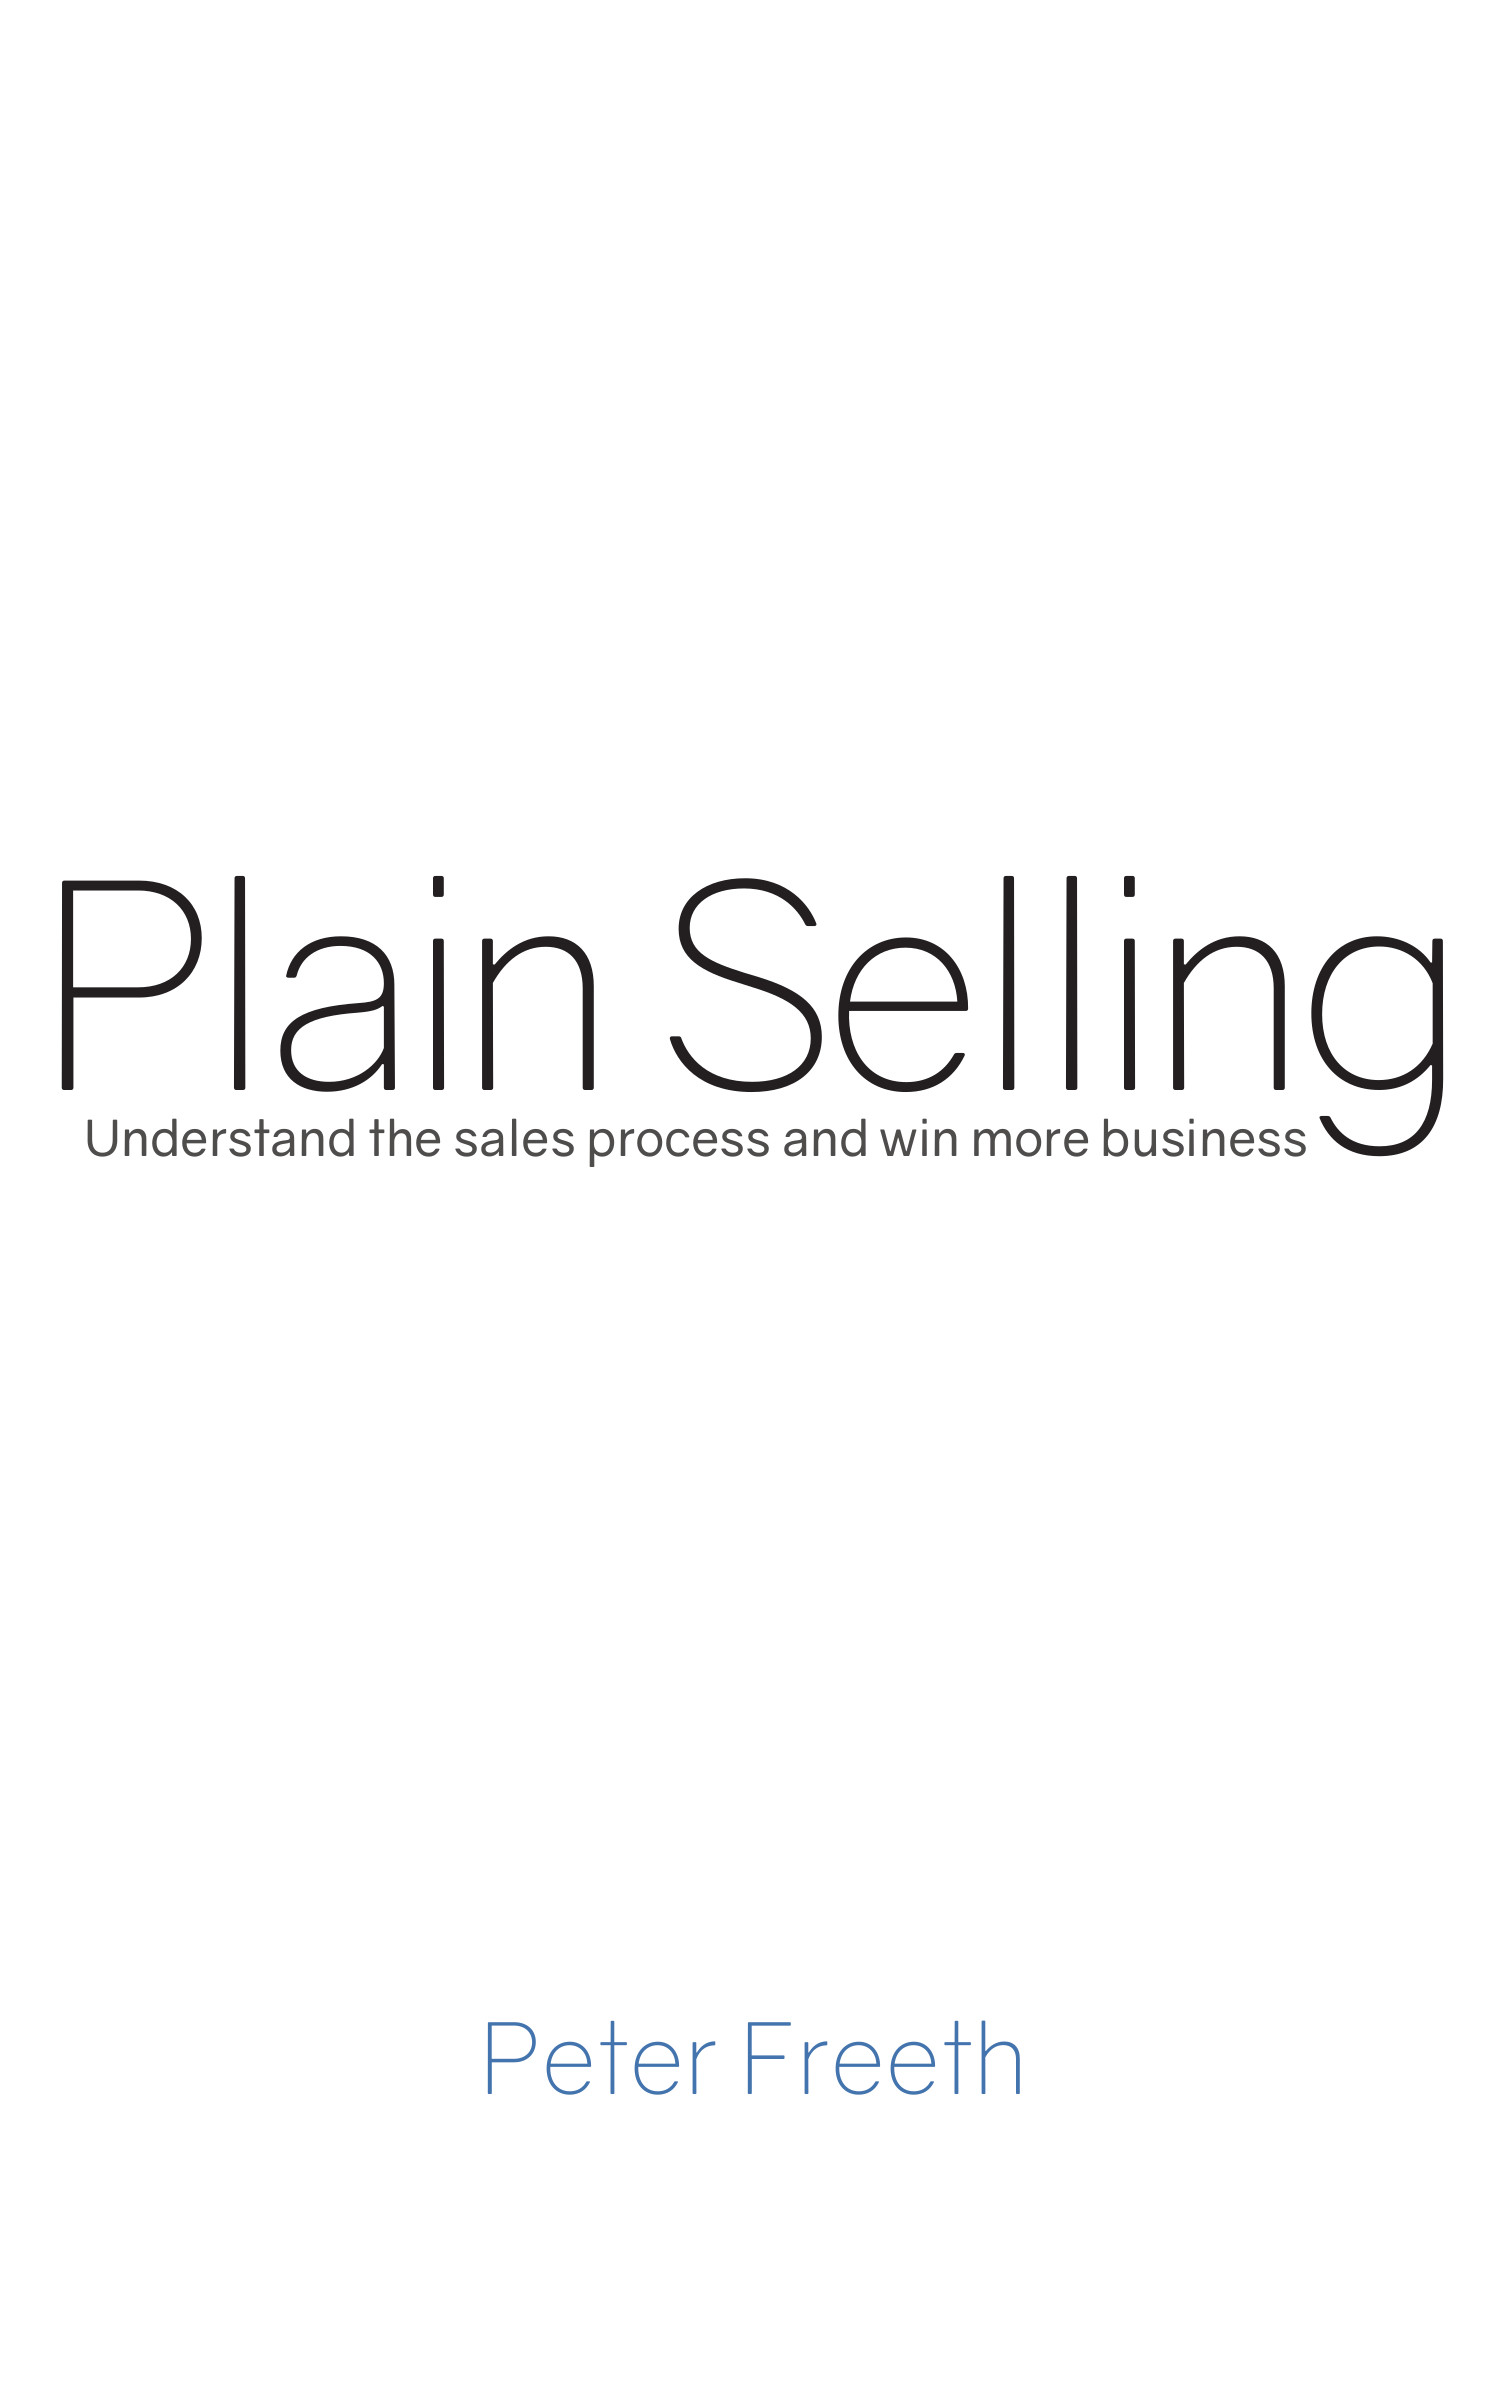 Plain Selling by Peter Freeth.  The plain, simple, sensible approach to selling - equally valuable for both product and service sales.